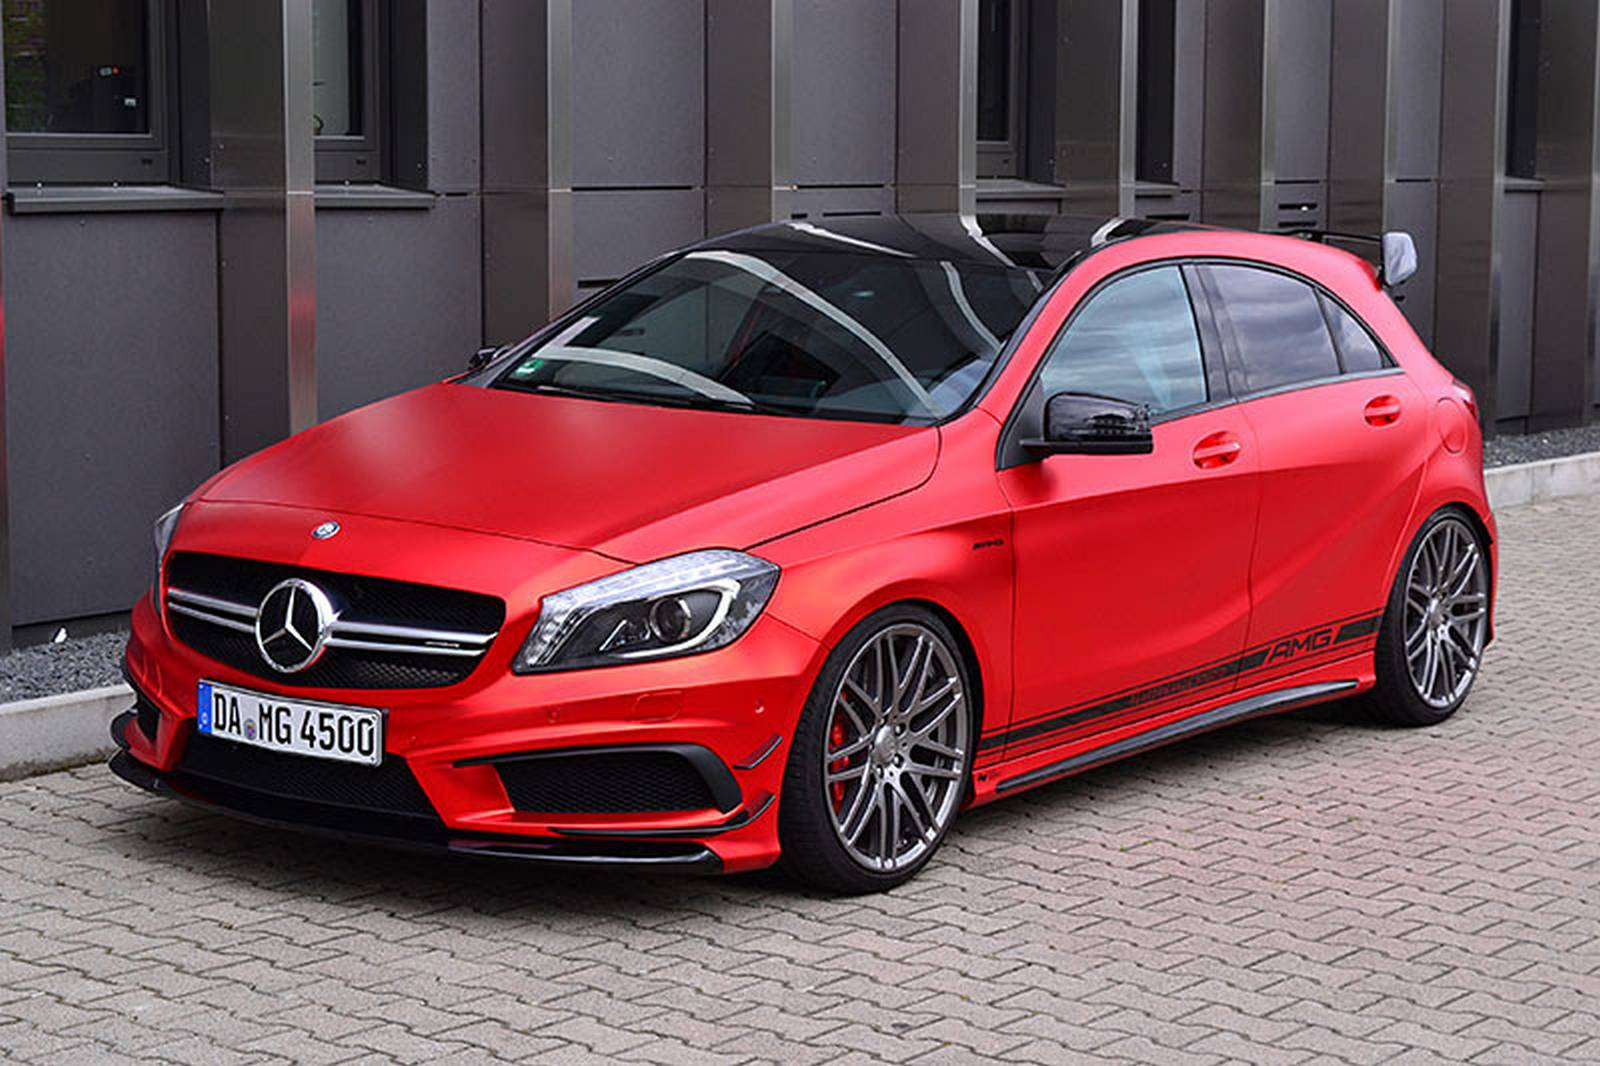 Mercedes benz a45 amg by folien experte gtspirit for Mercedes benz a45 amg